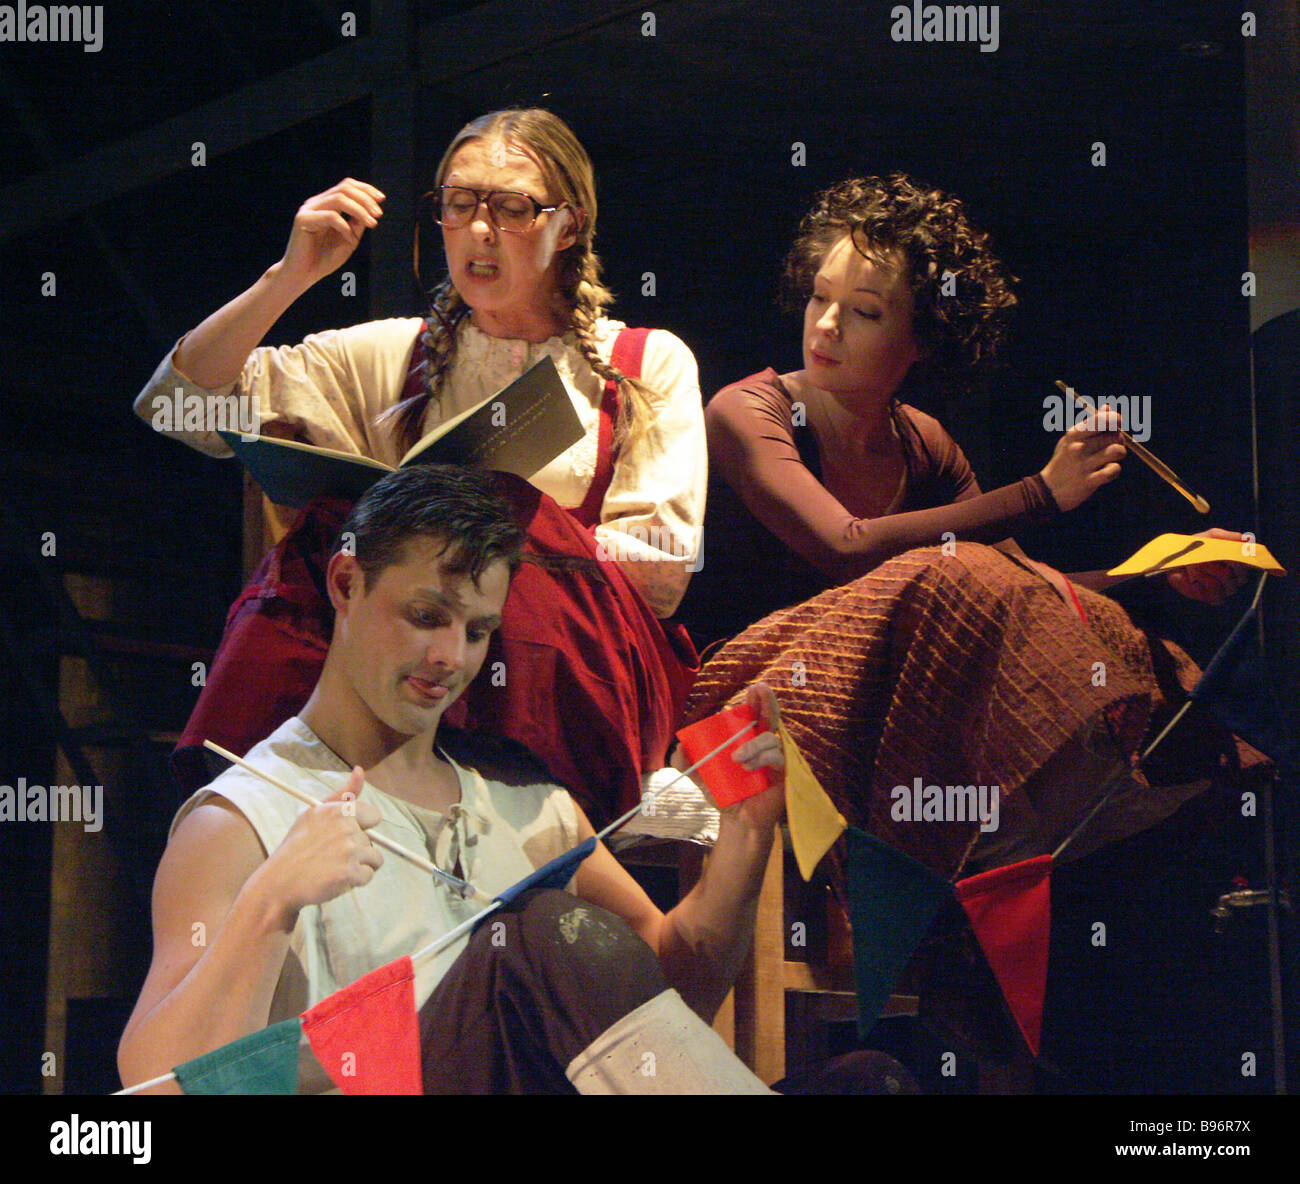 The image of Kabanikha in the play The Storm. Characteristics and image of Kabanikhi in the play The Storm by Ostrovsky